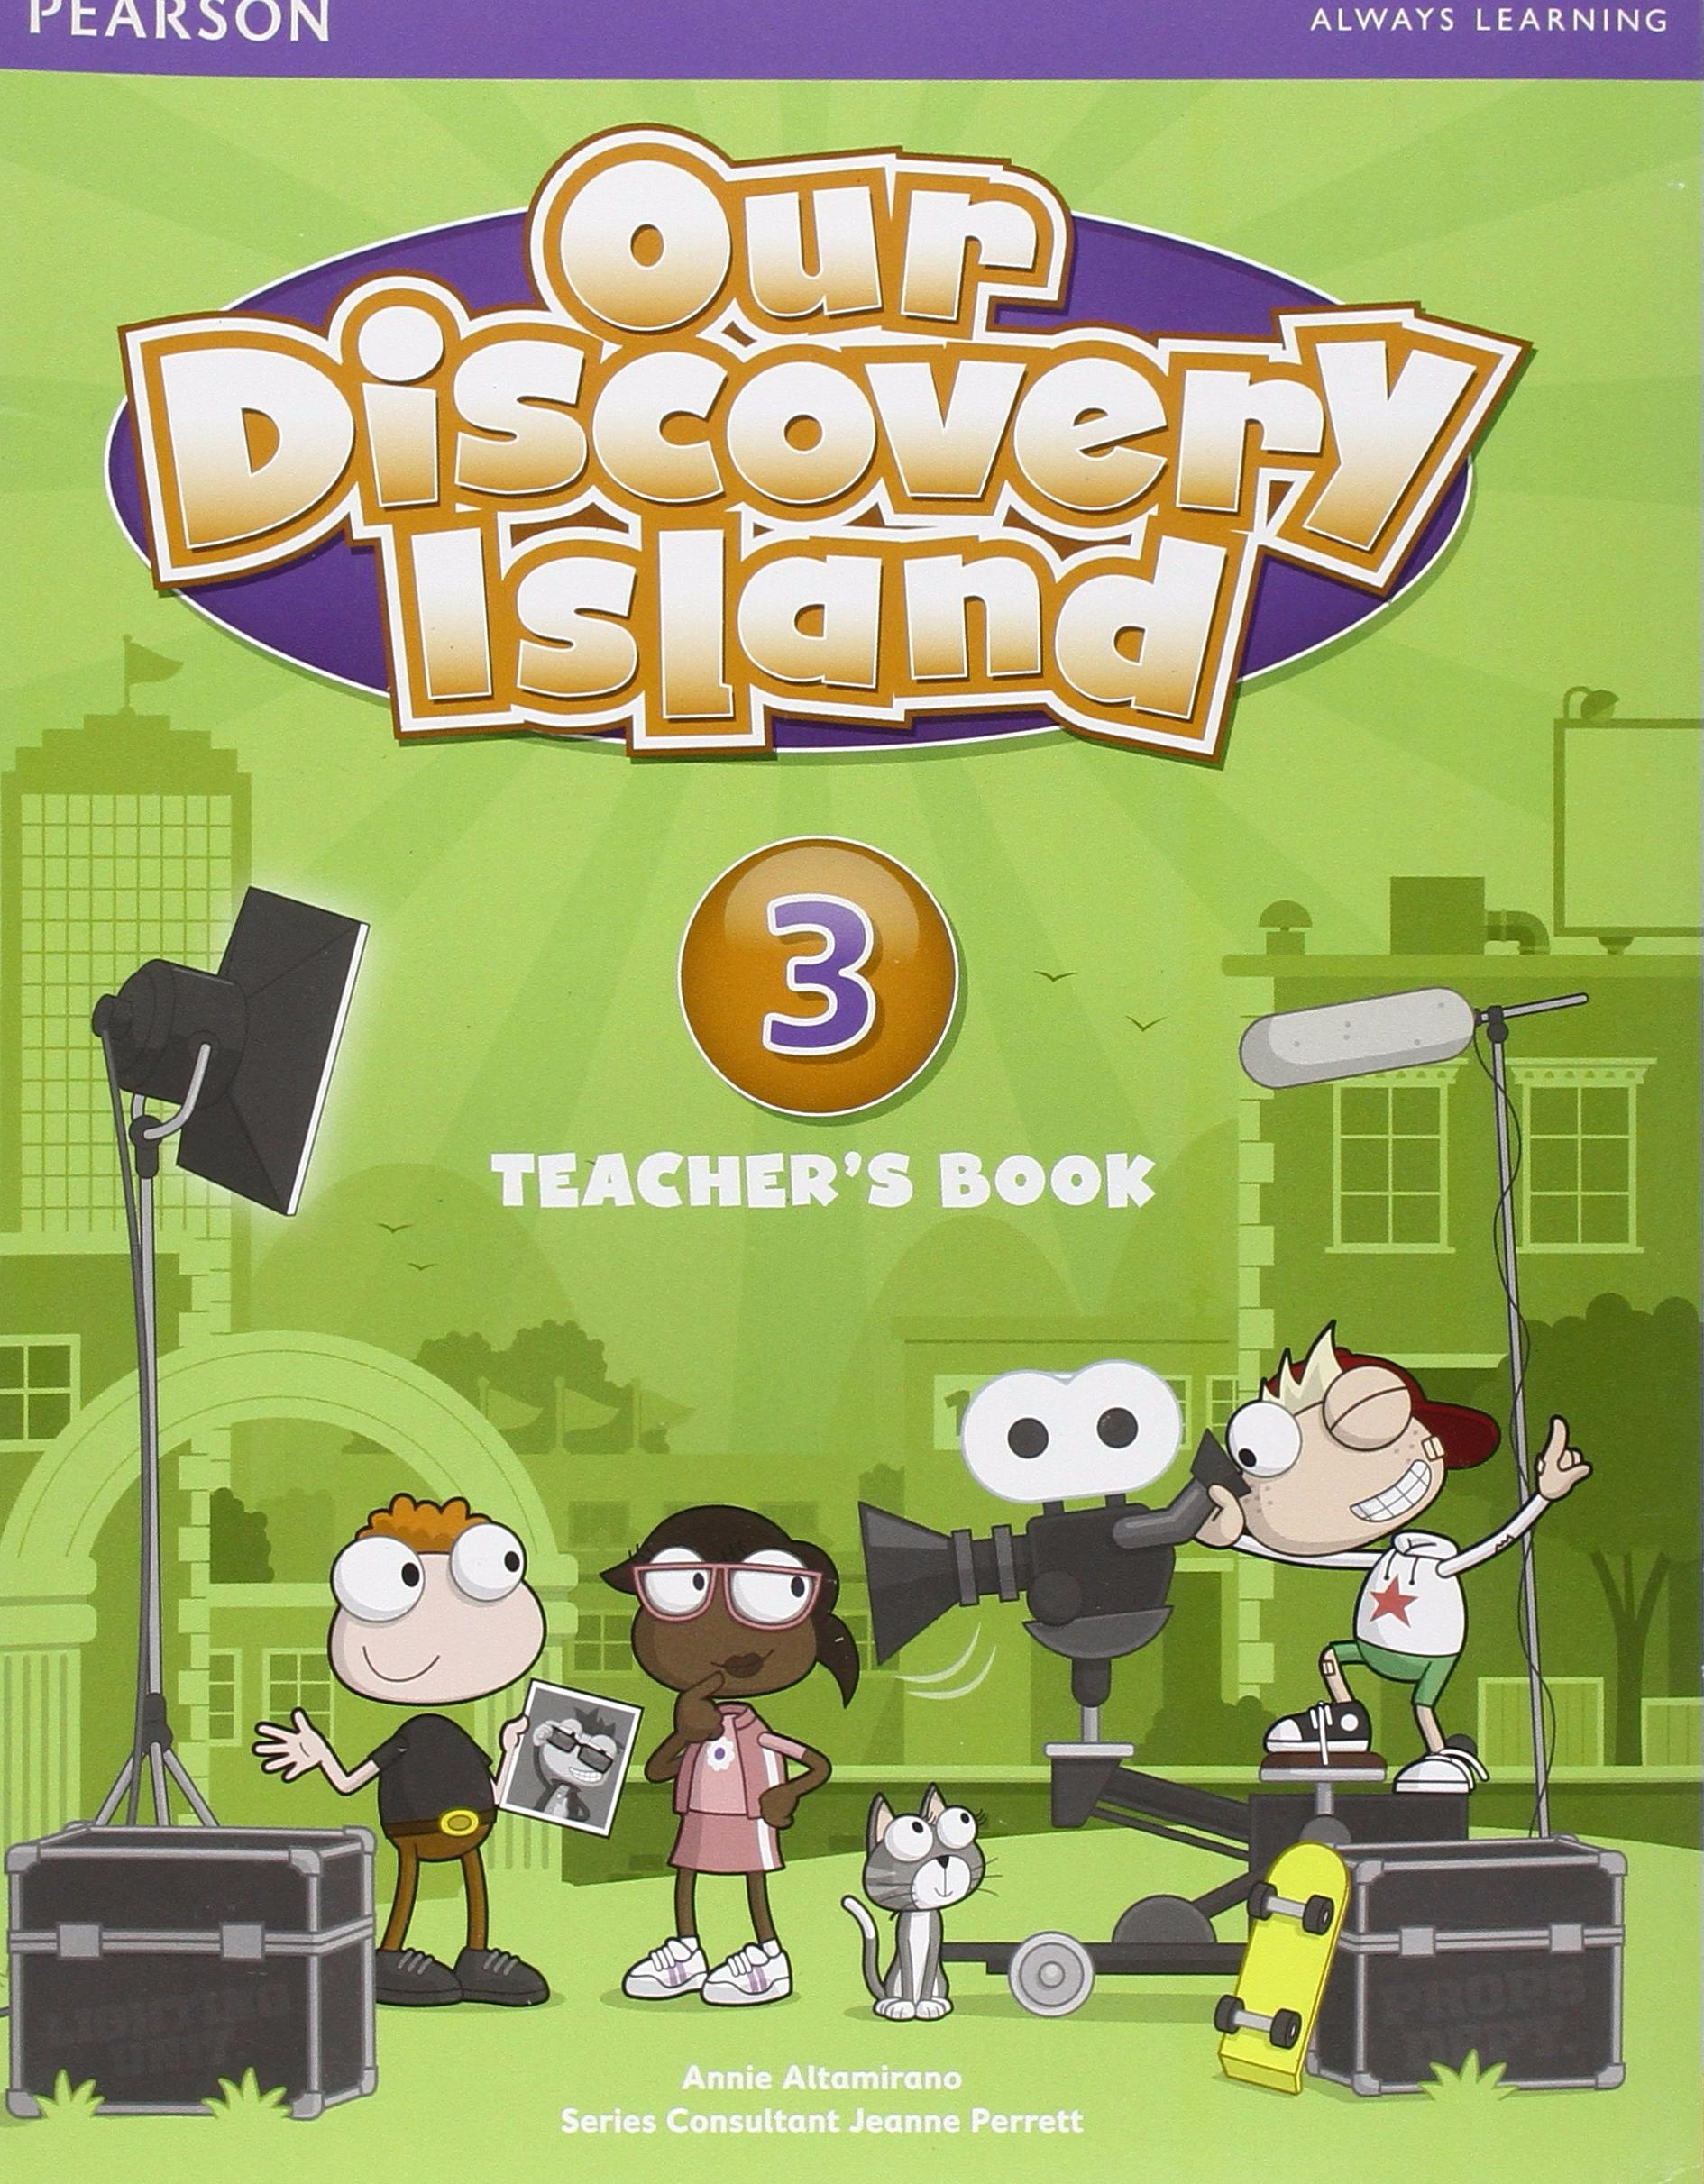 OUR DISCOVERY ISLAND 3 Teacher's Book + Pin Code